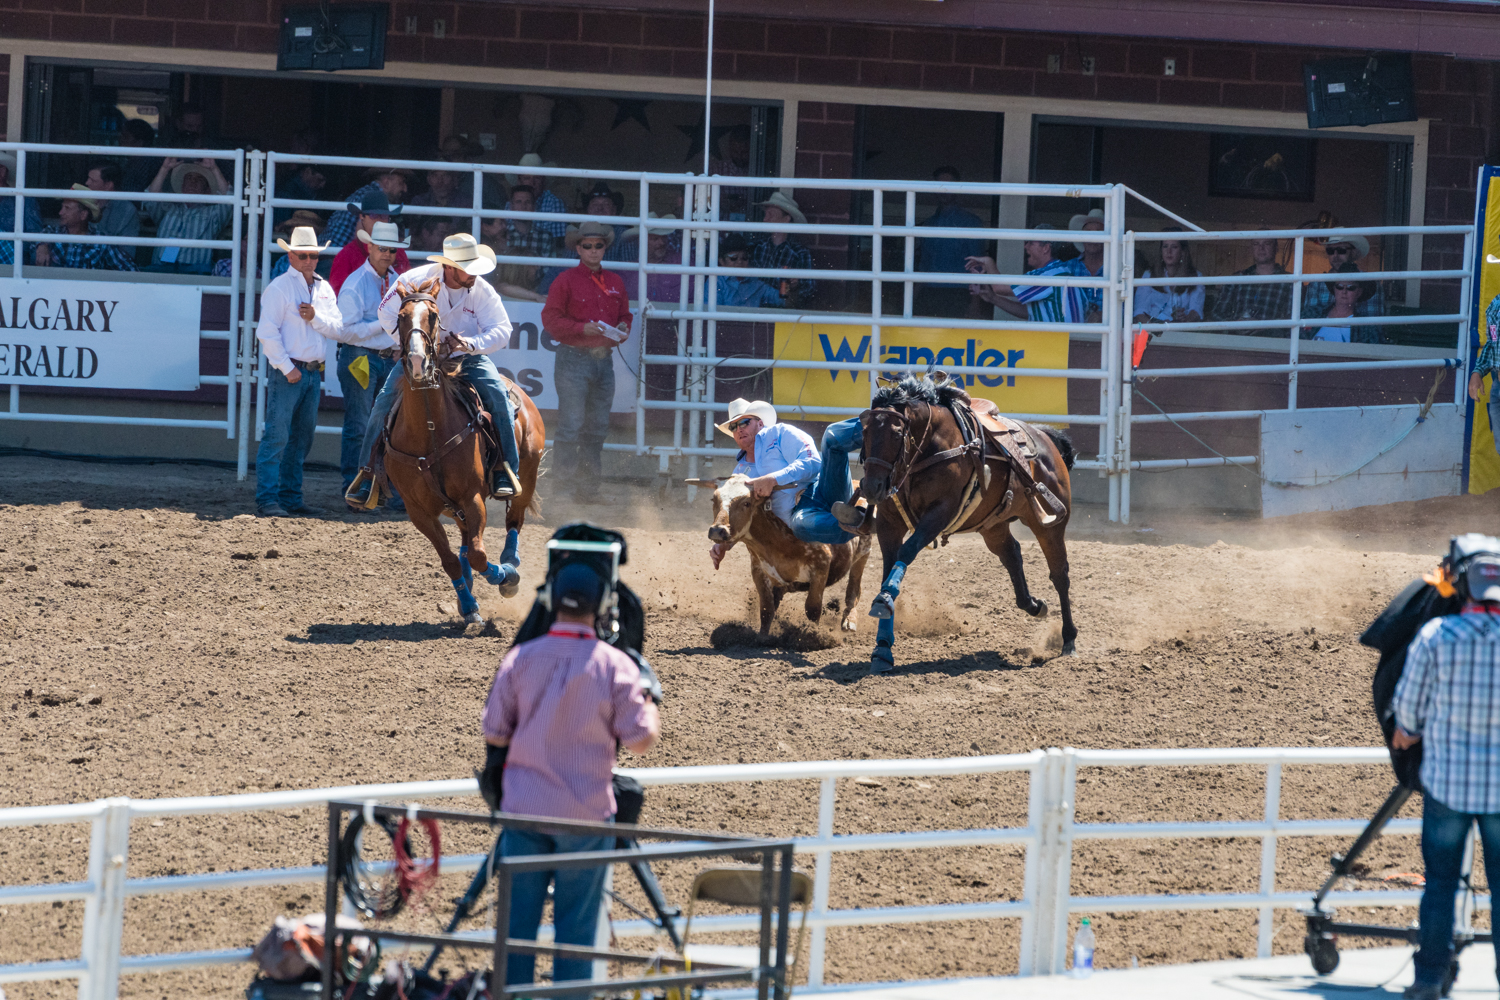 The idea was the pull along side the bull,jump off and absolutely flatten the poor bastard.